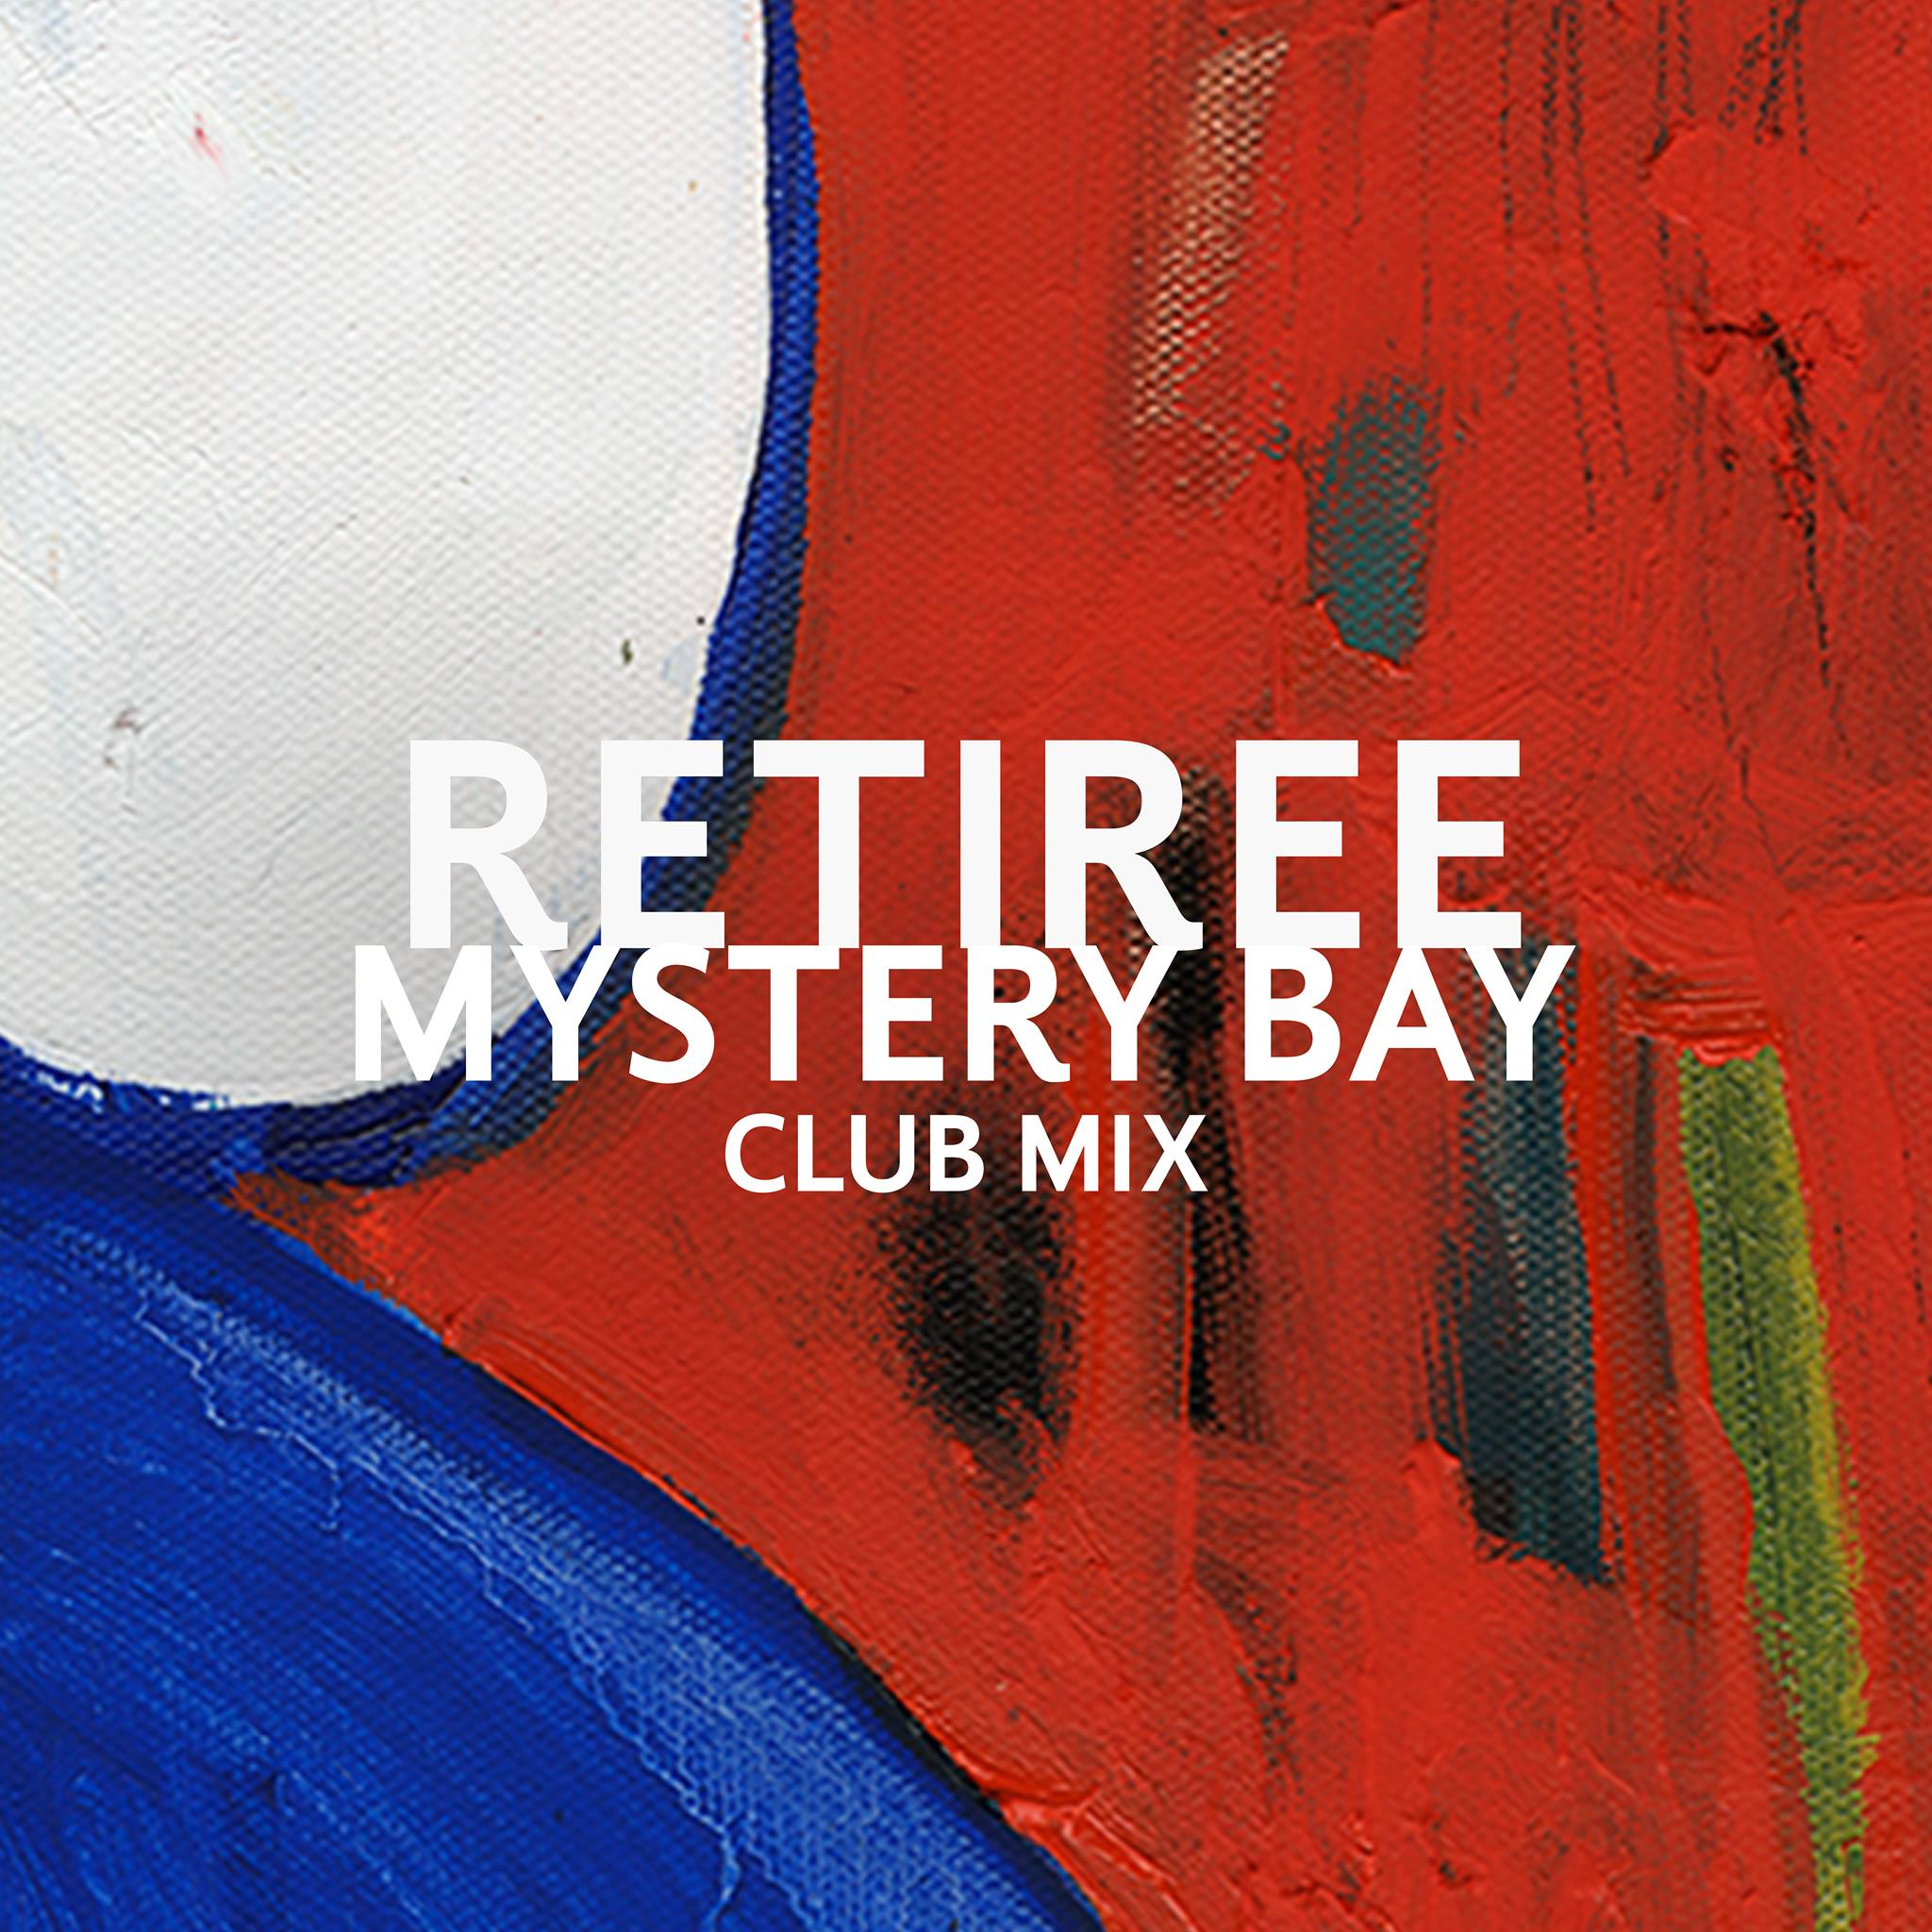 RETIREE - MYSTERY BAY CLUB MIX - SingleMIXED